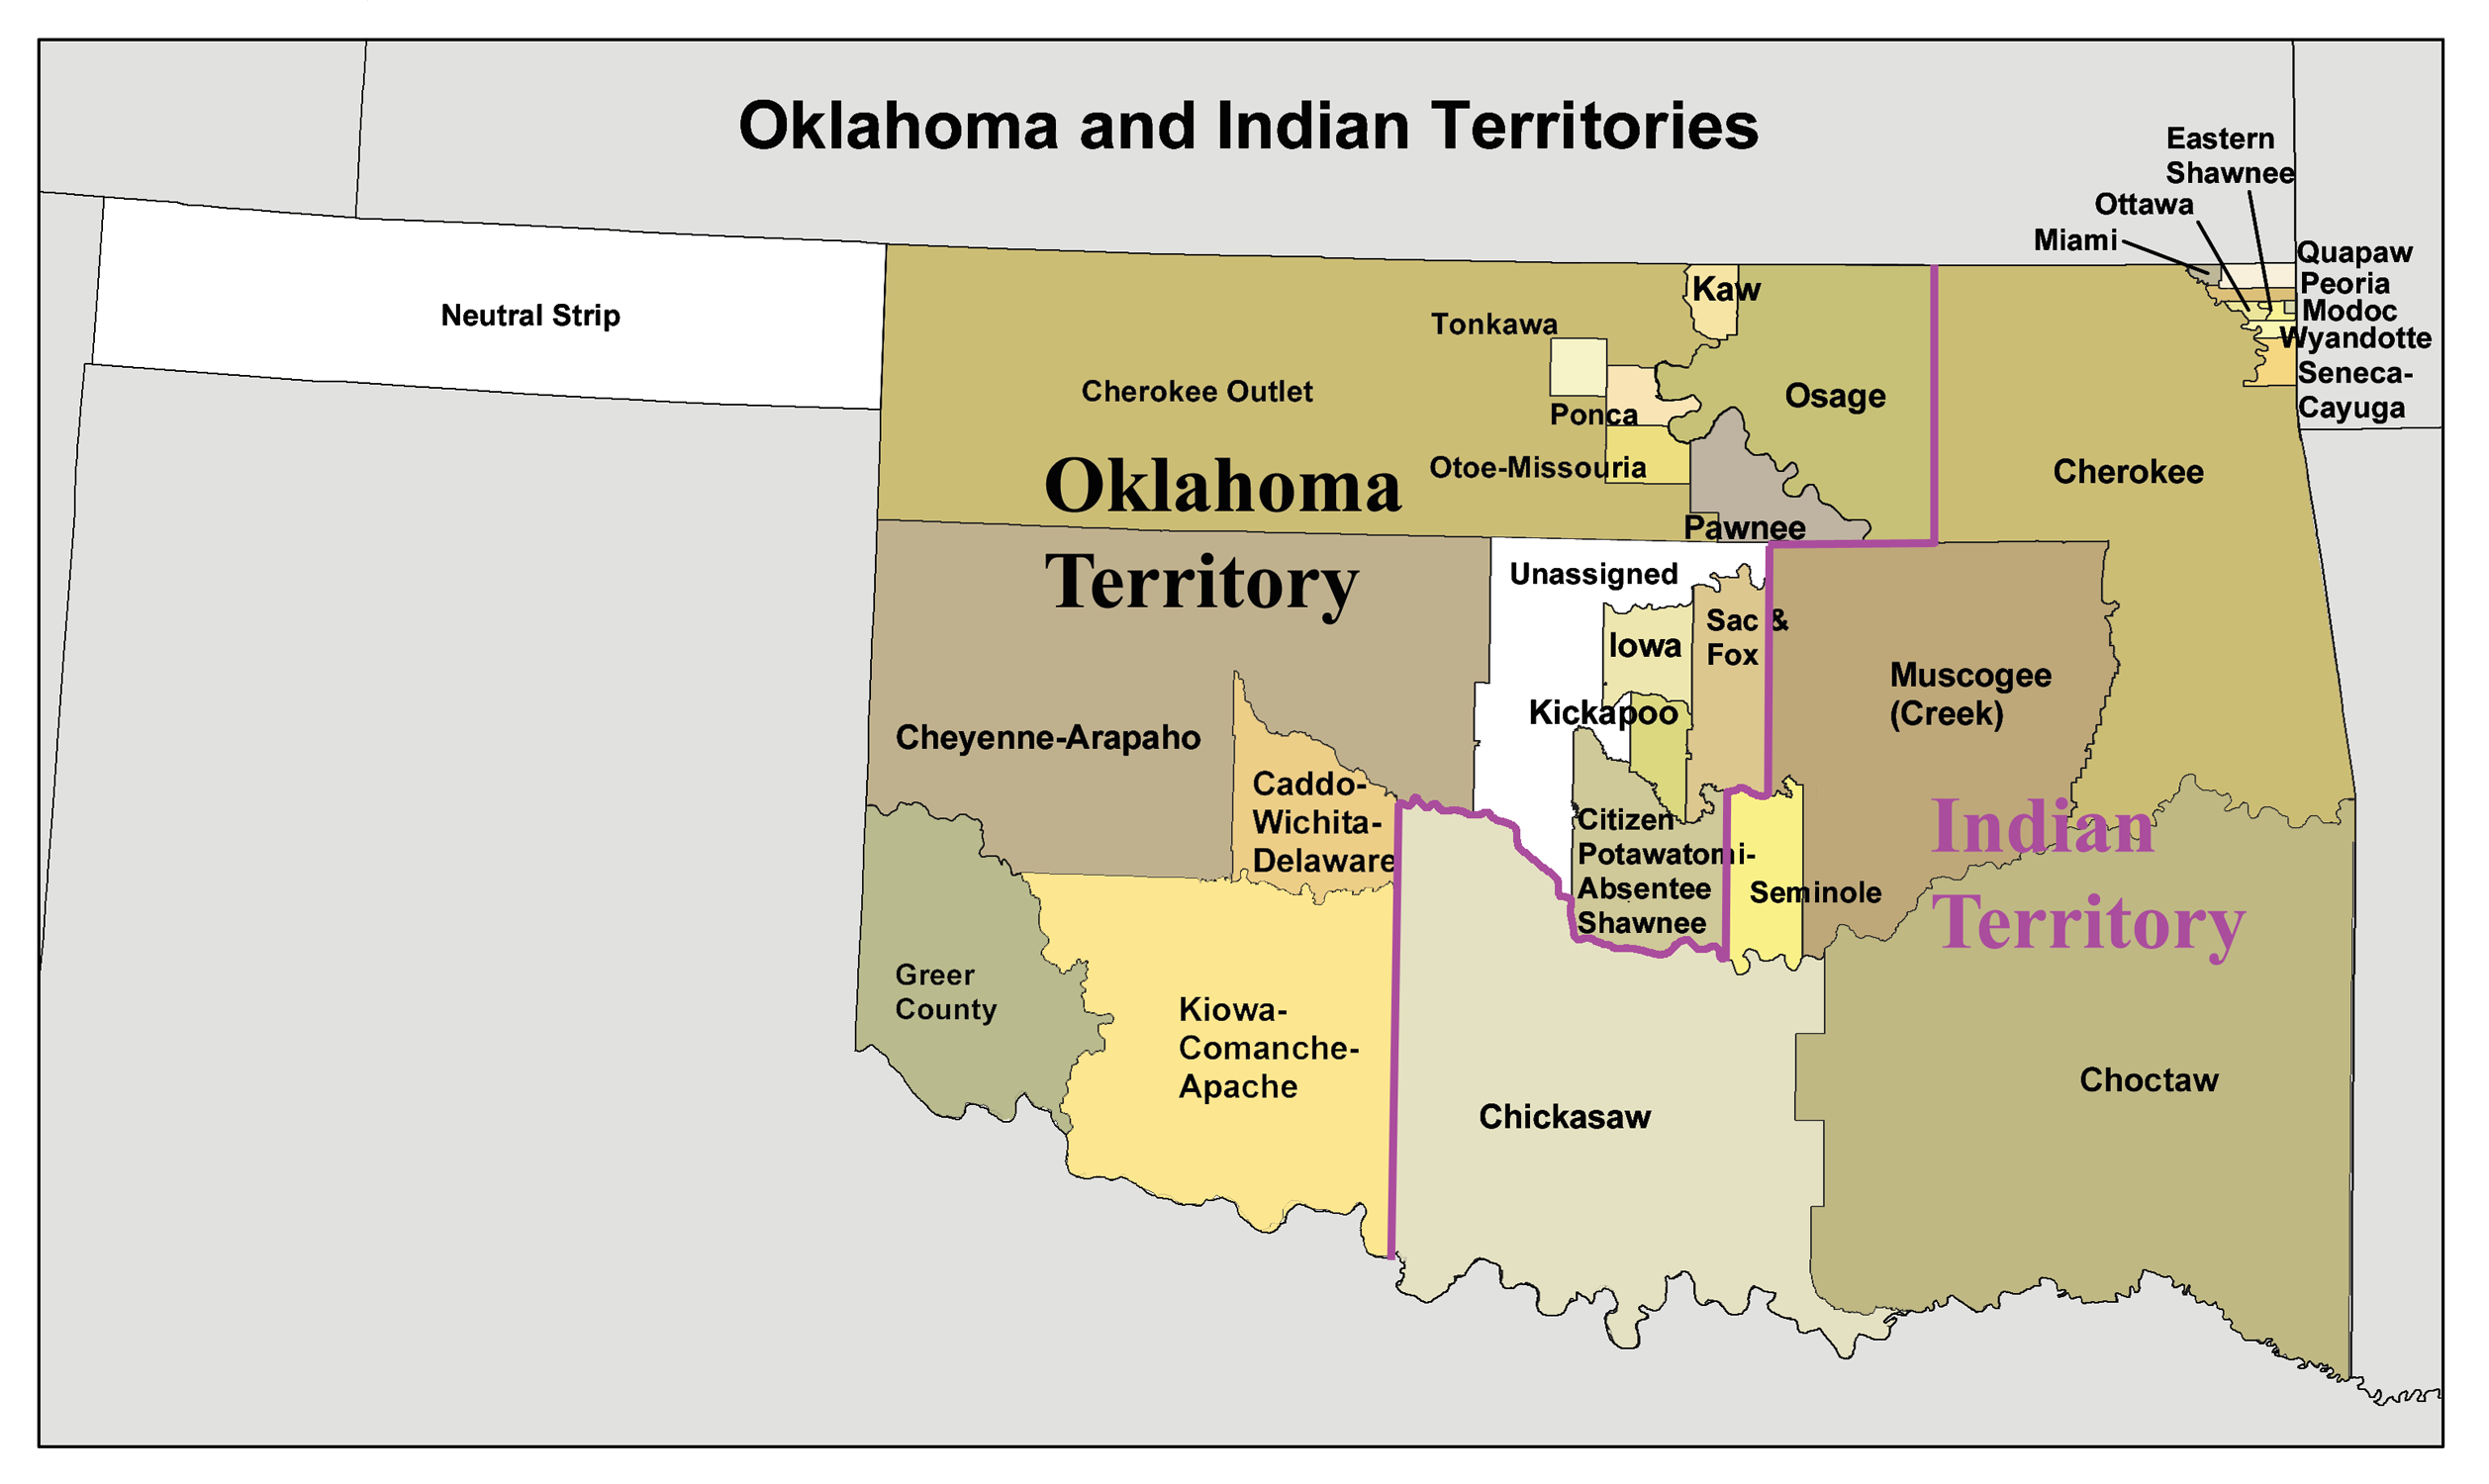 Indian Territory - Wikipedia on united states and its territories, united states overseas territories, map of puerto rico, map of usa with state boundaries, map of the first 16 states, map of norway territories, number of us territories, map with capitals of australia, map of us sales, map of missouri and bordering states, map of israel territories, us map territories, map of ancient roman territories, map of usa in 1783, map of us in late 1800s, map of colonial territories, map of mexico, map of u.s. possessions, map united states 1890, map of cherokee territories,